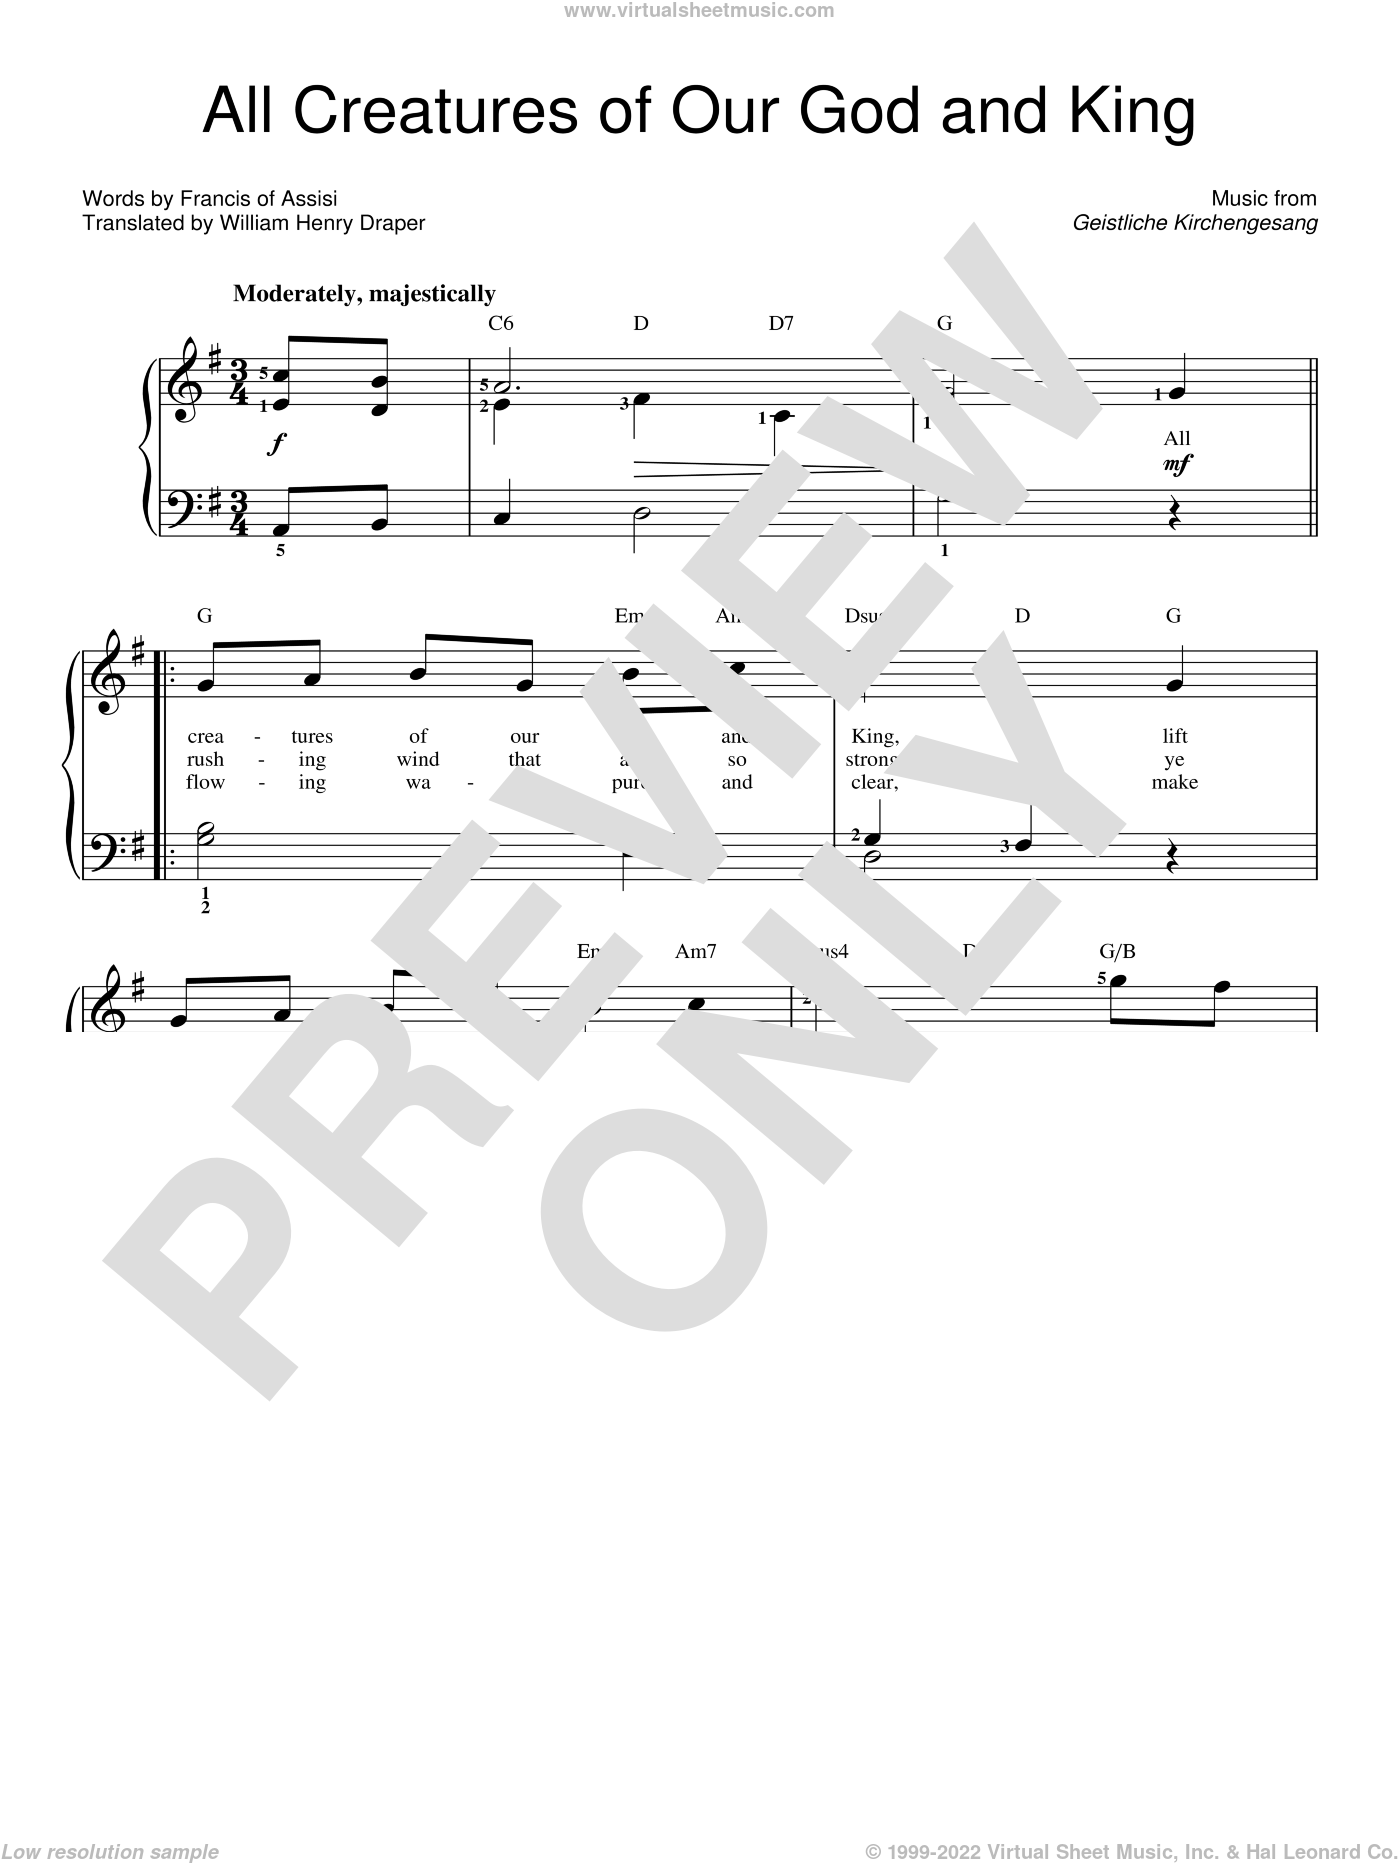 All Creatures Of Our God And King, (easy) sheet music for piano solo by Francis Of Assisi, Geistliche Kirchengesang and William Henry Draper, easy skill level